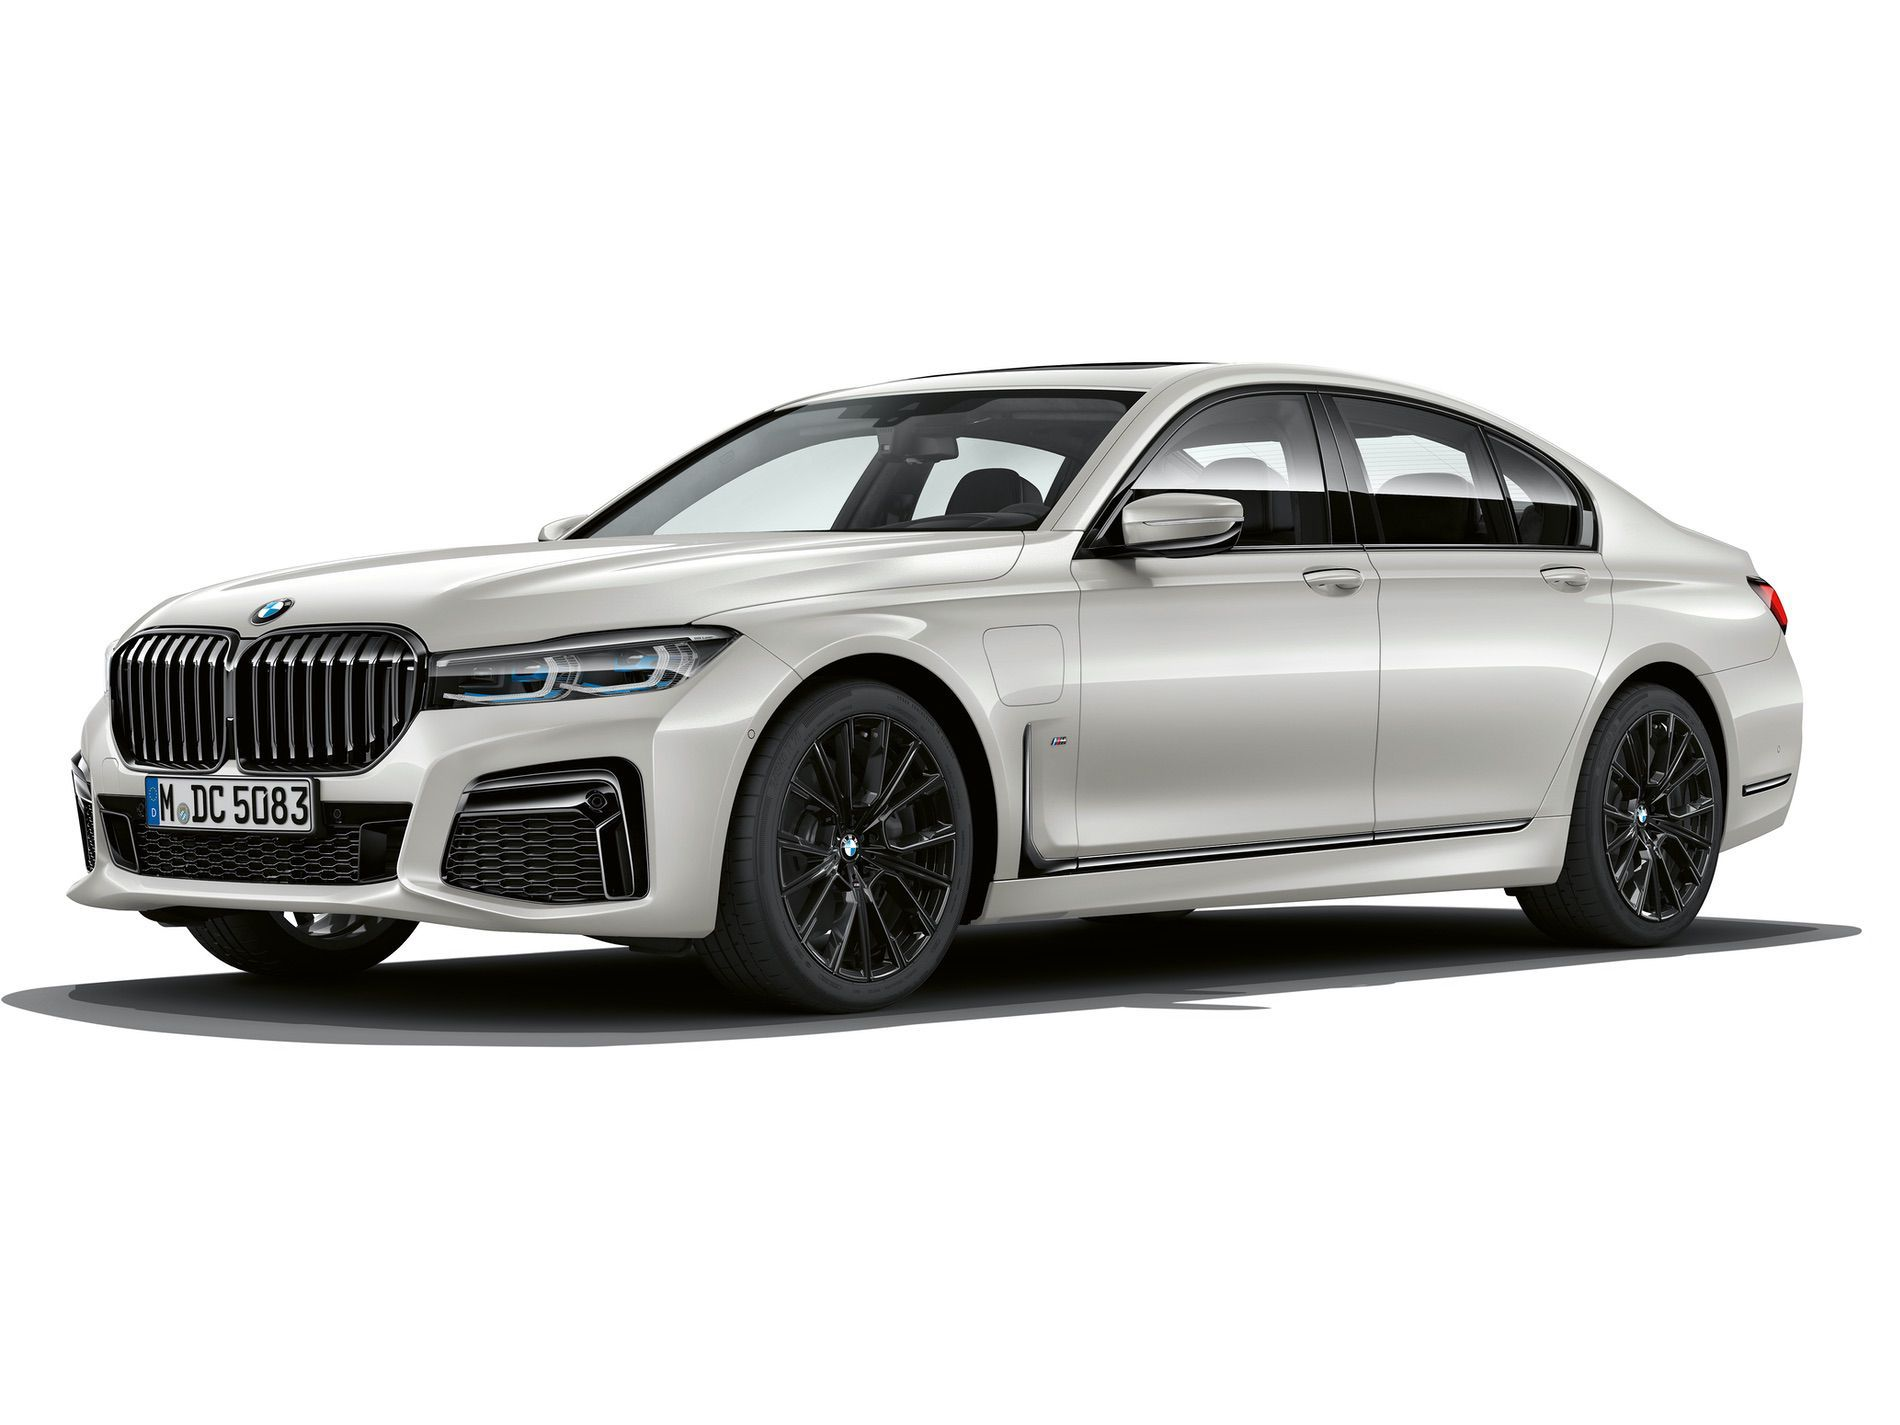 2019 Bmw 7 Series Facelift M Sport With Extended Shadow Line Bmw Bmw 7 Series Bmw Australia